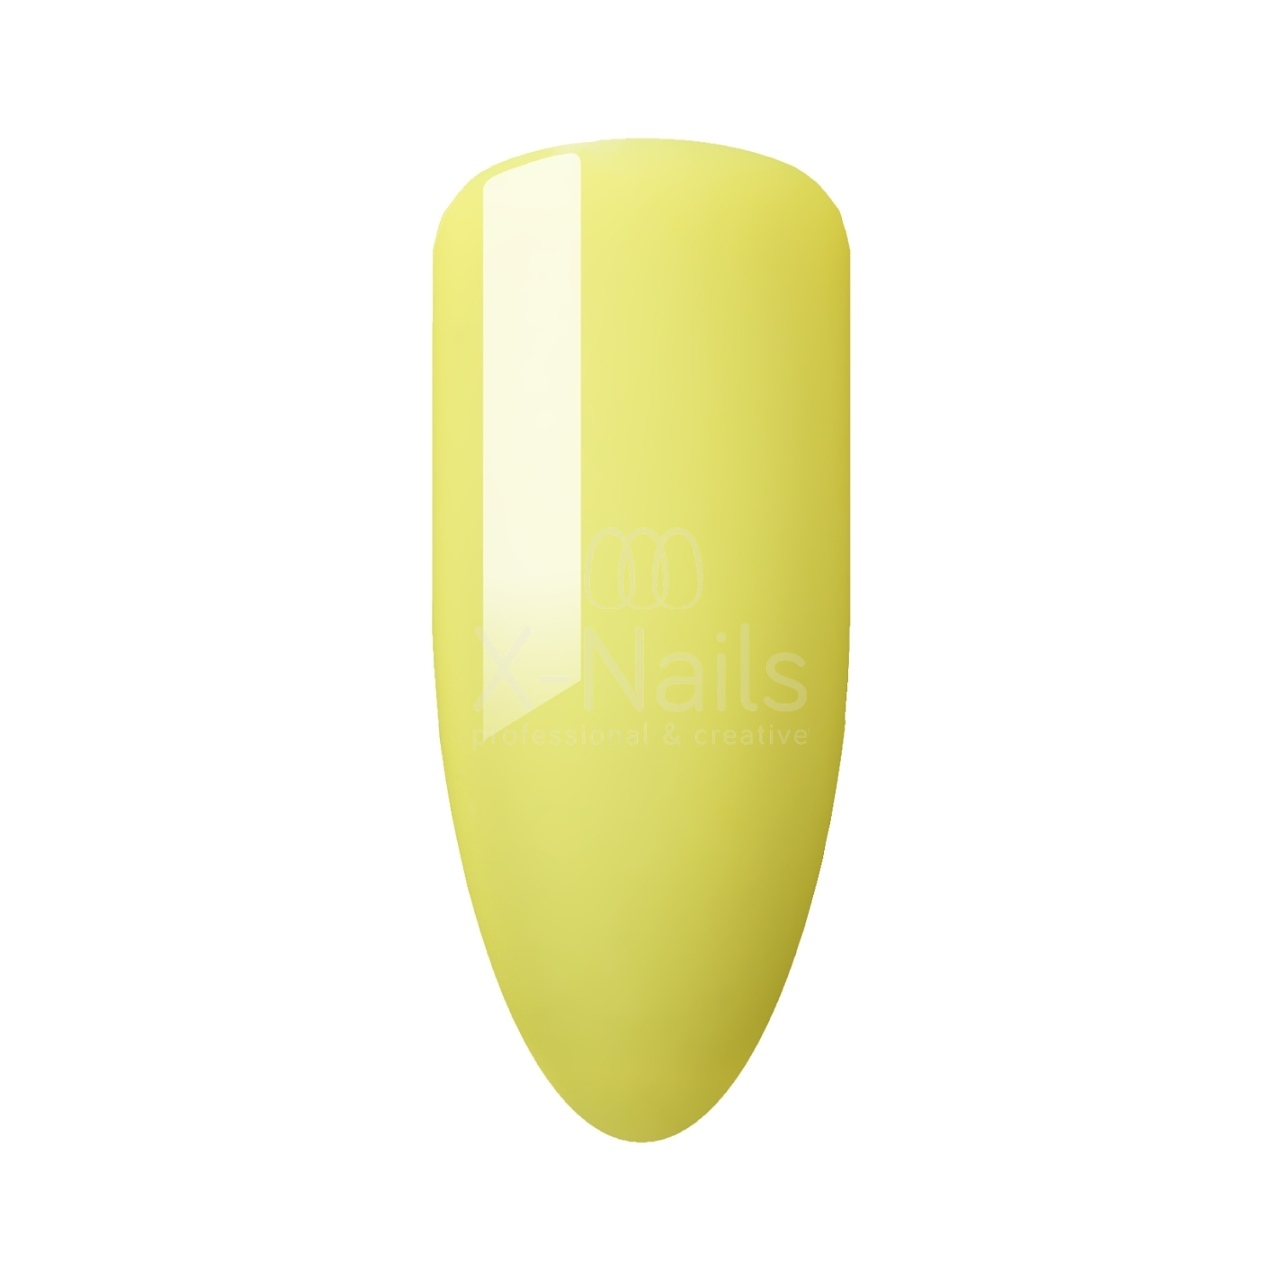 X-NAILS One Step gel lak 5 ml - SUNNY